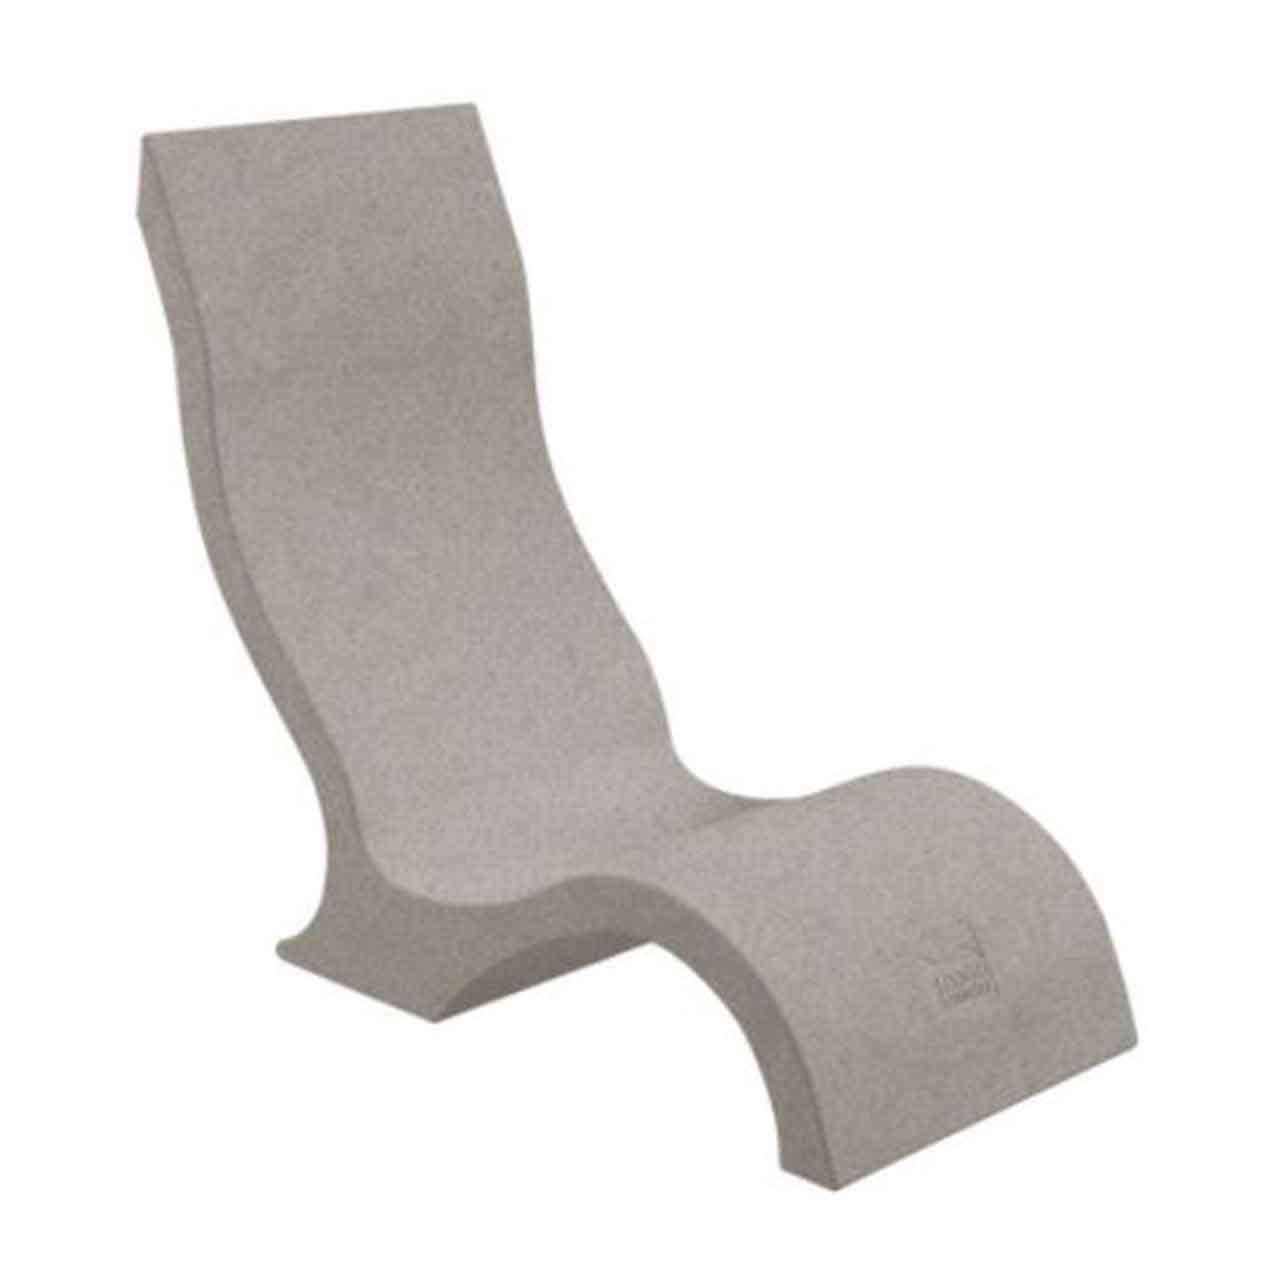 Ledge Lounger In-Pool Chair - Sandstone